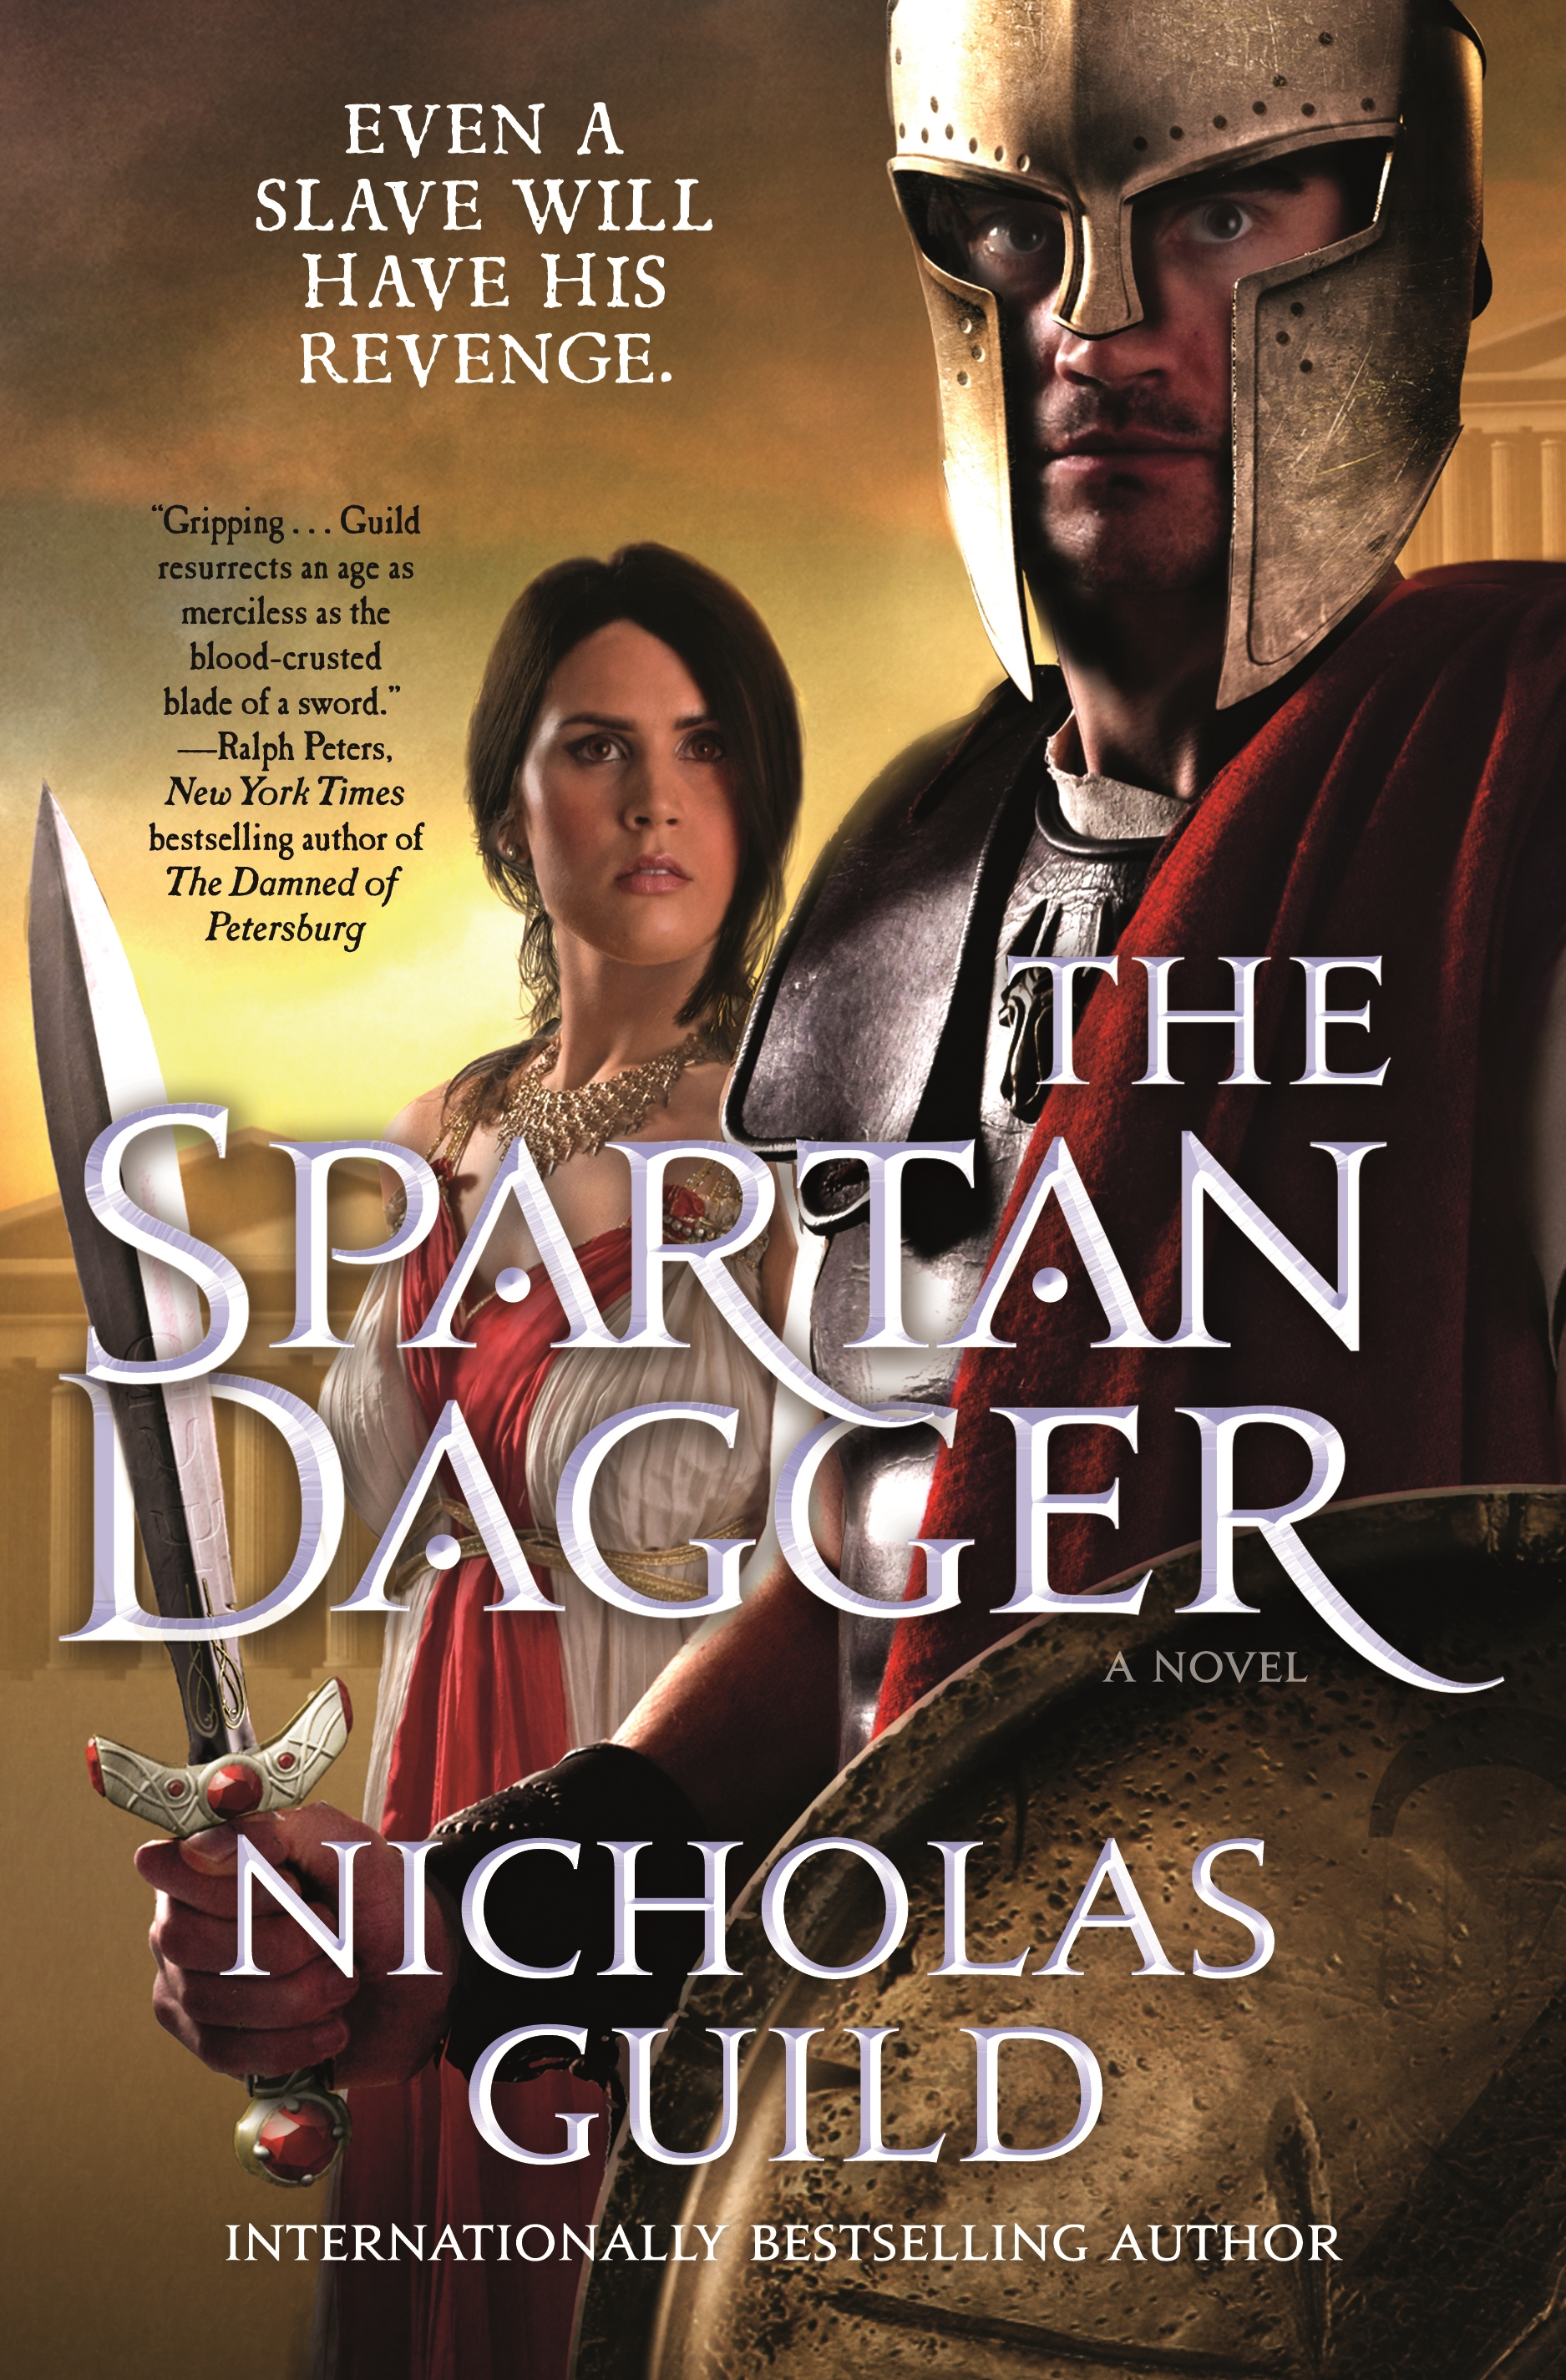 The Spartan Dagger: A Novel